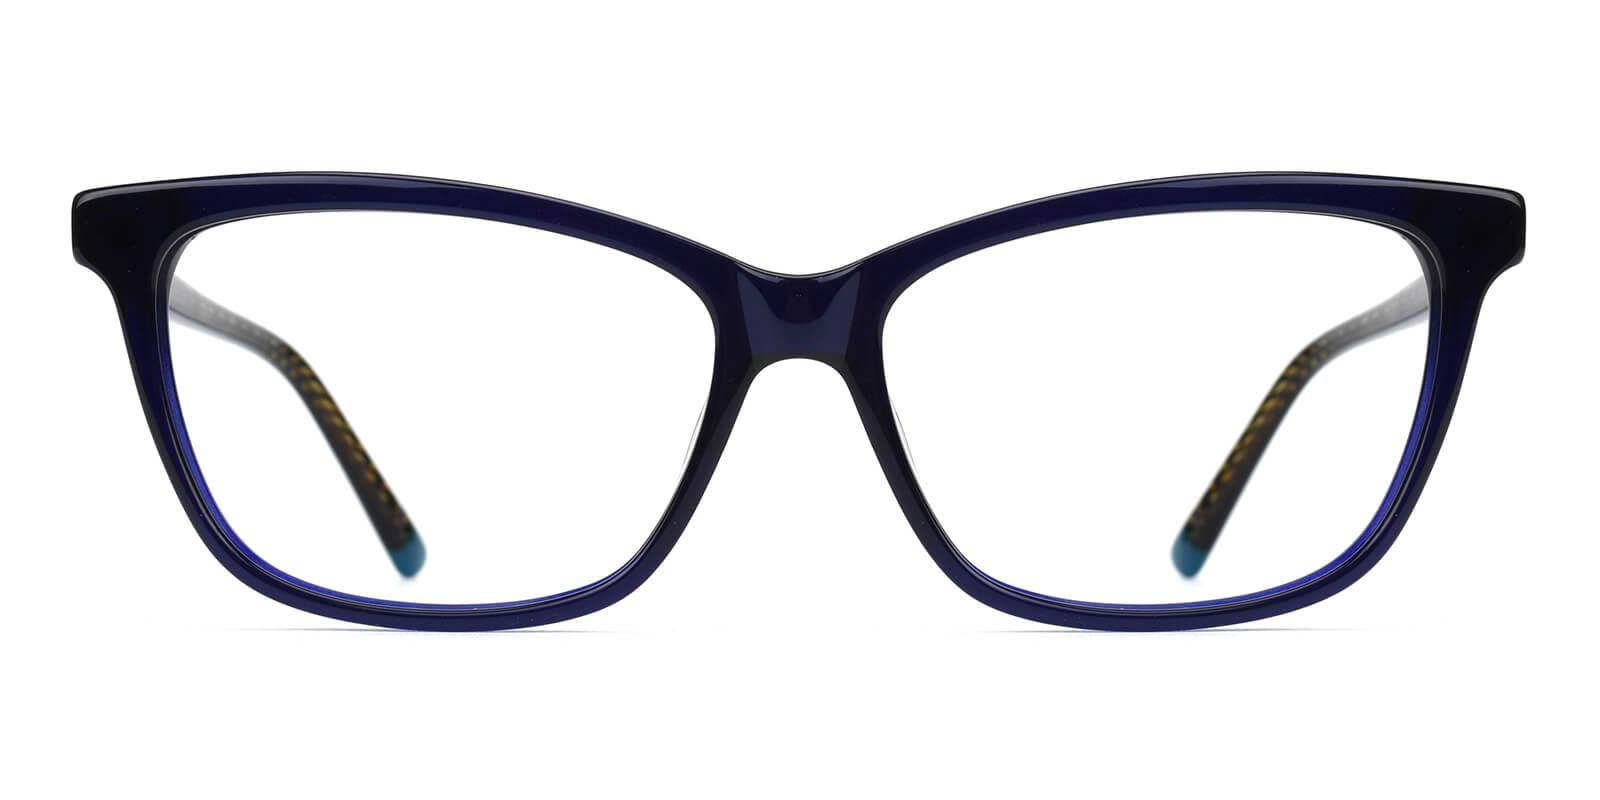 Ezra-Blue-Cat-Acetate-Eyeglasses-additional2